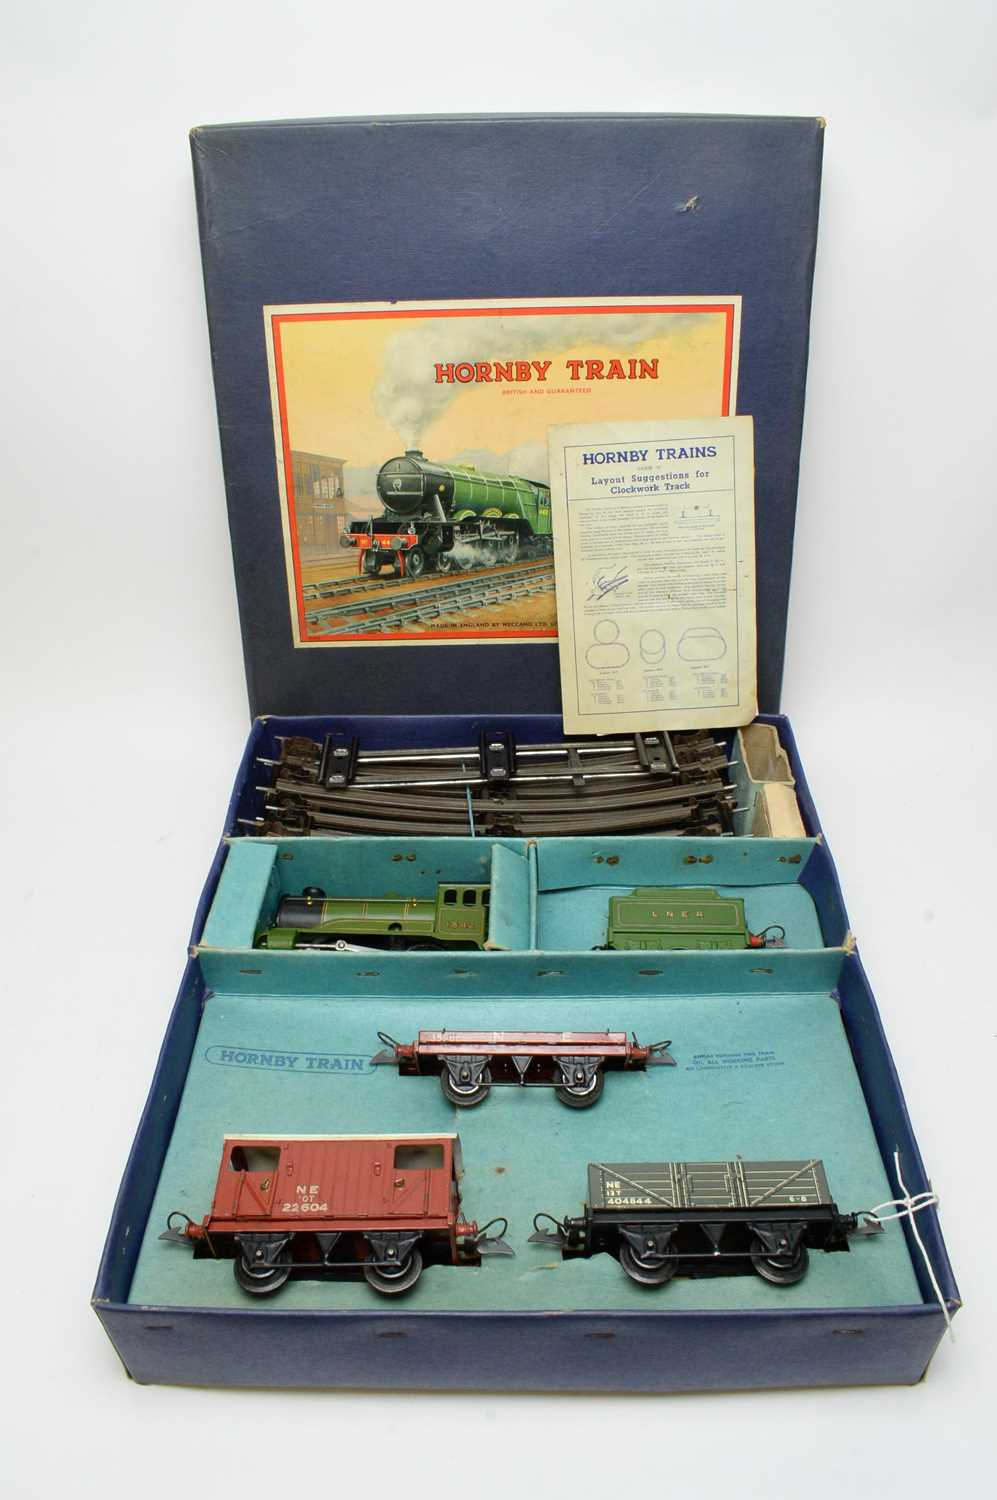 A boxed Hornby 0-gauge train set. - Image 2 of 2